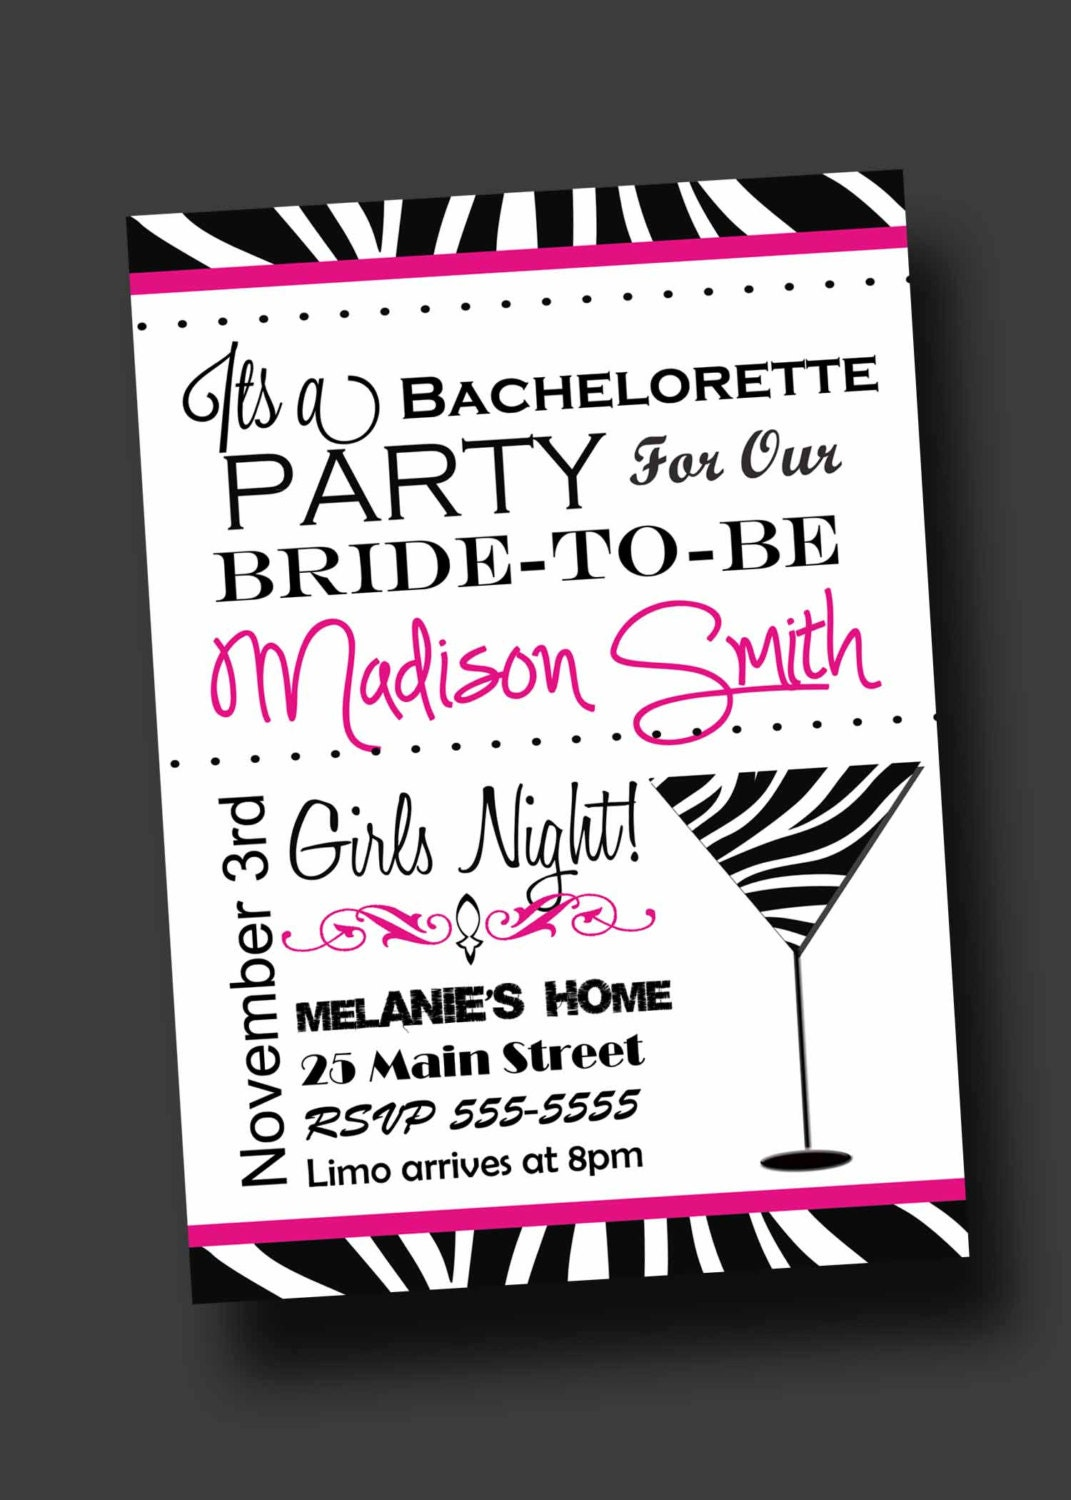 Printable Bachelorette Party Invitations and get inspiration to create nice invitation ideas